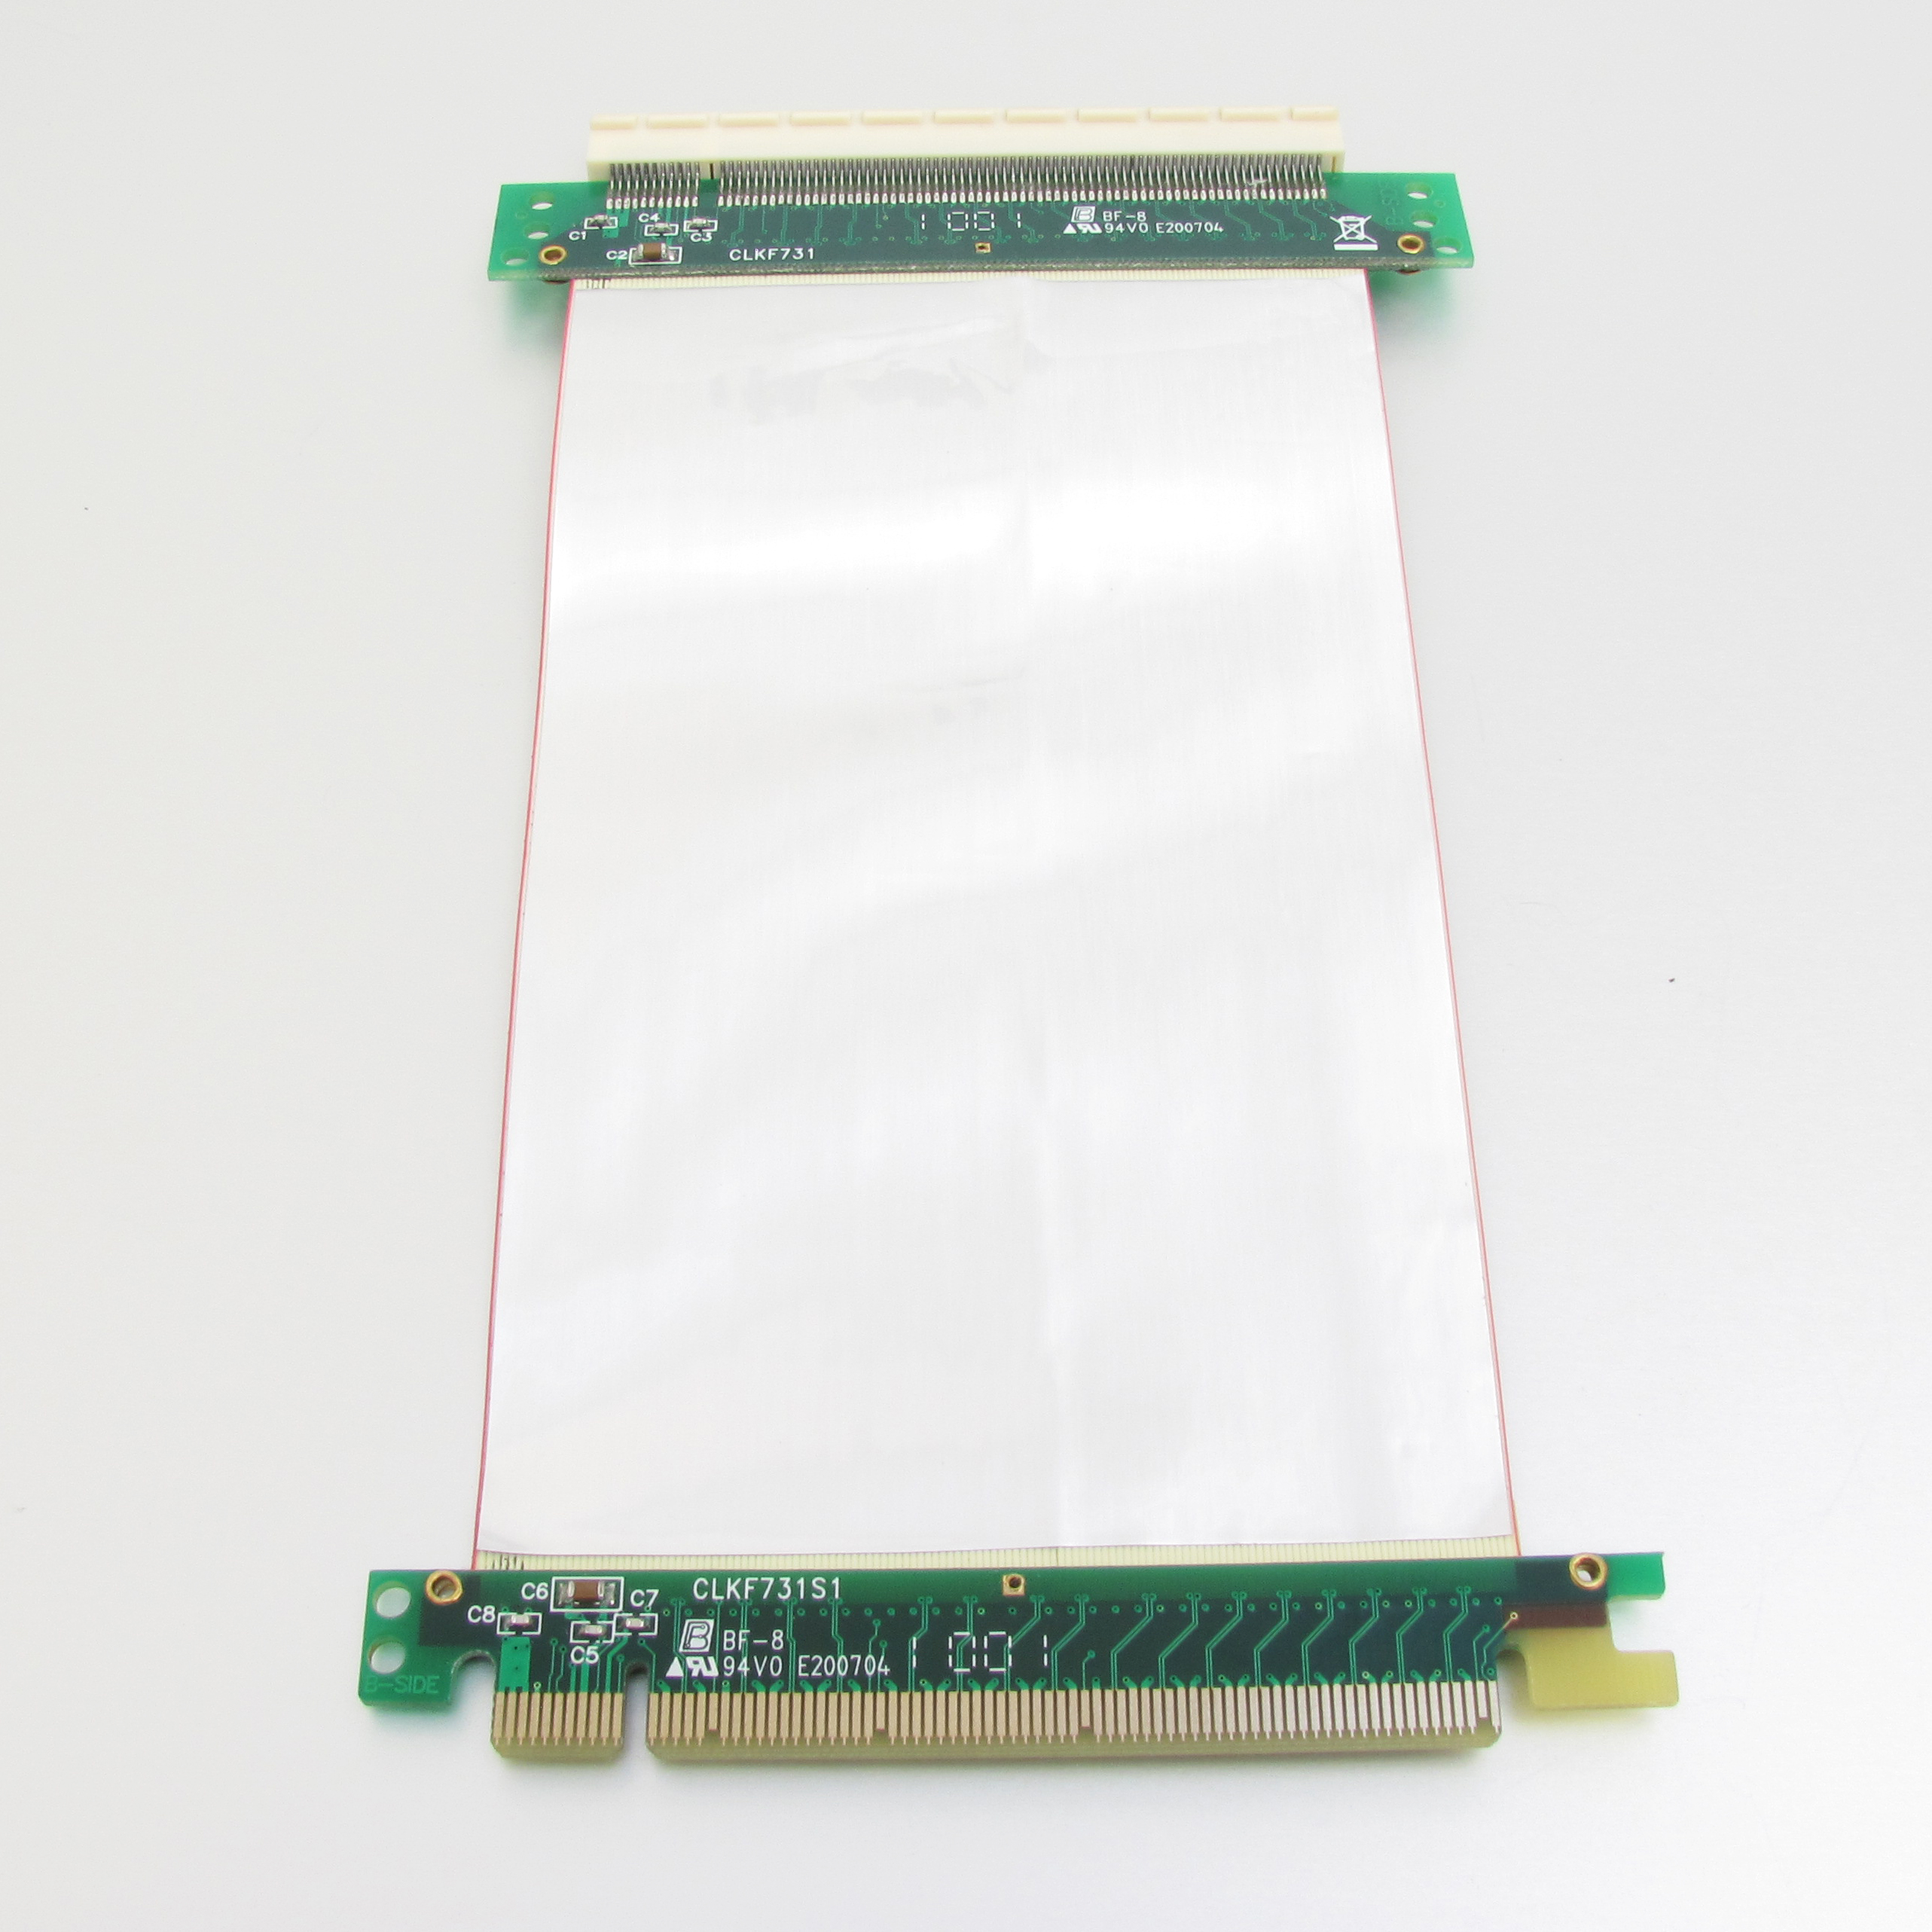 Riser Card PCI Express 1-1 PCIe w/cable 150mm